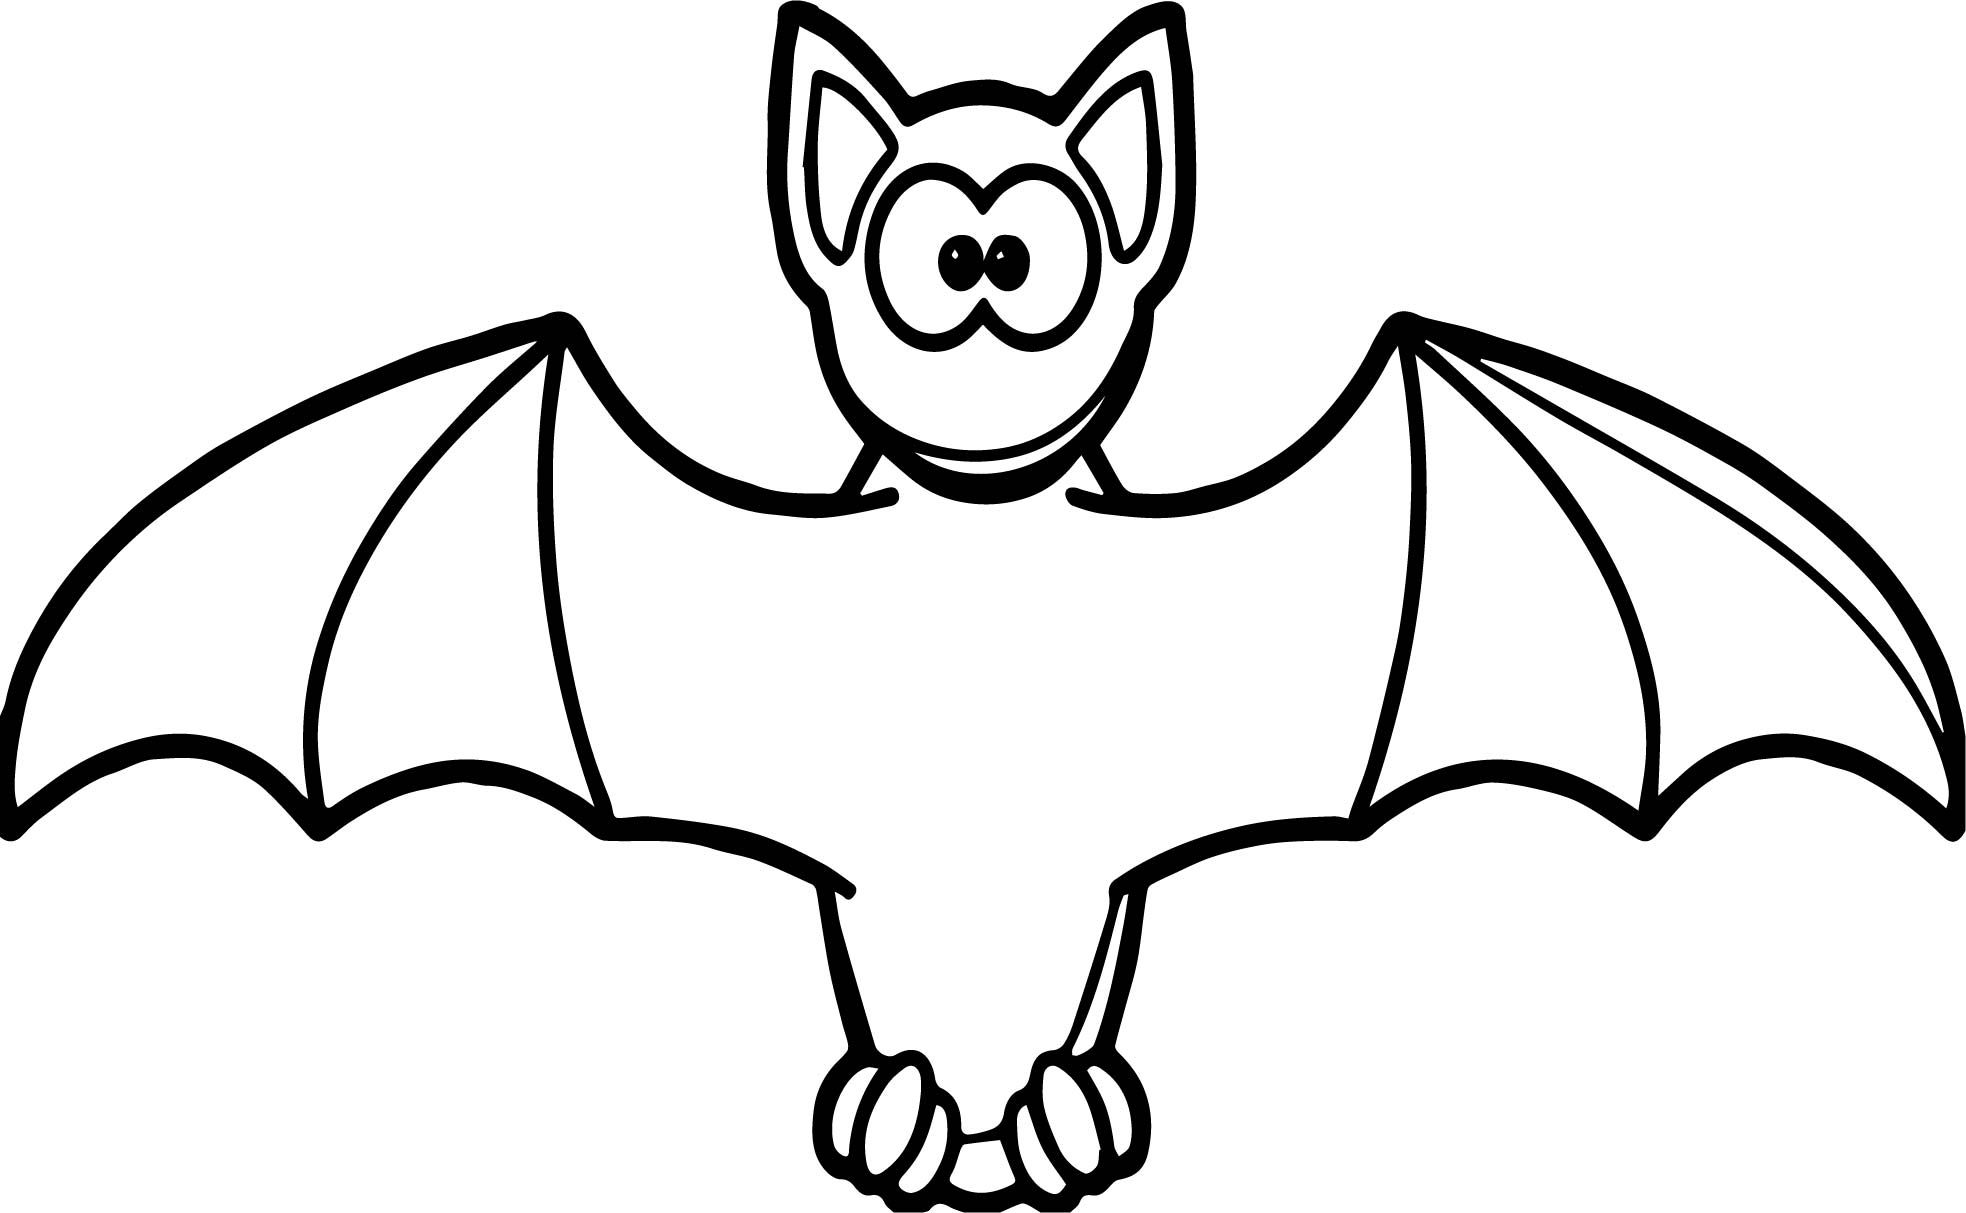 Cool Cartooon Vampire Bat Coloring Page With Images Bat